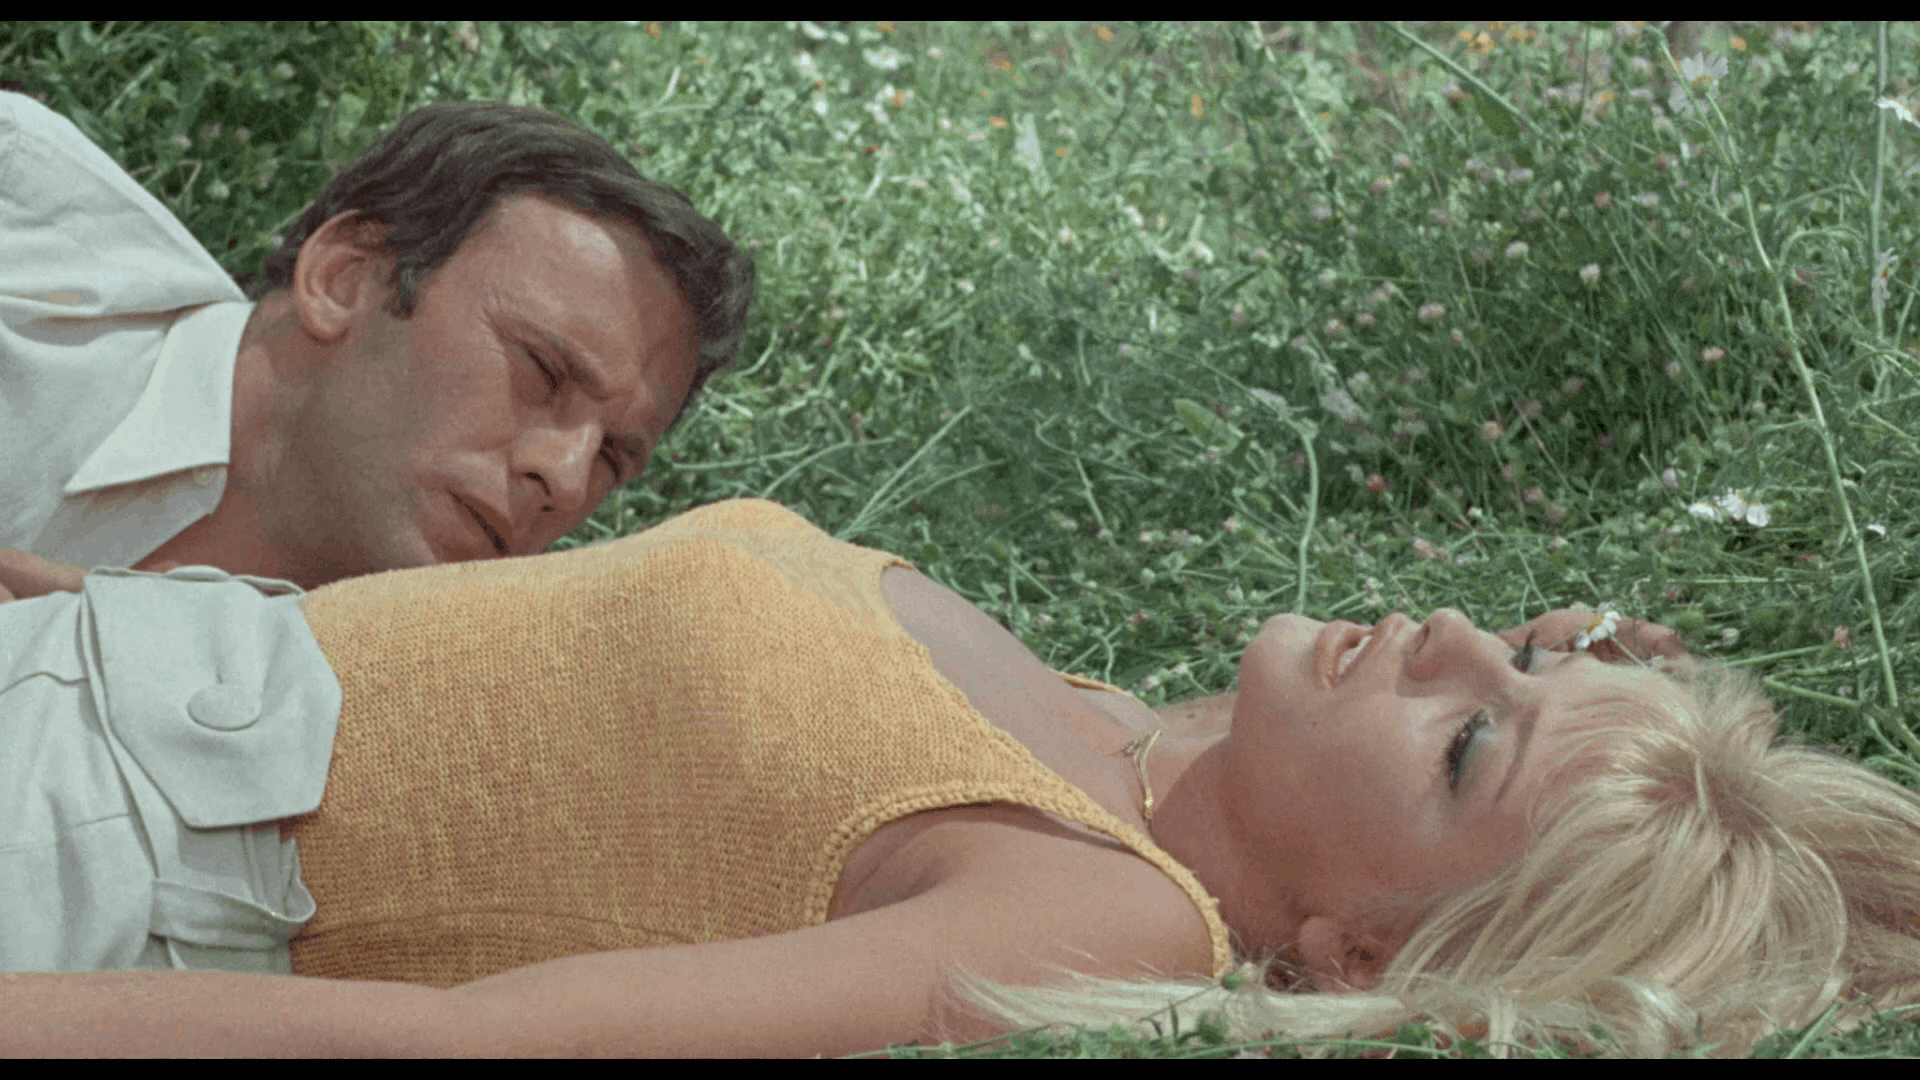 Death Laid An Egg (1968) [Blu-ray review] 16